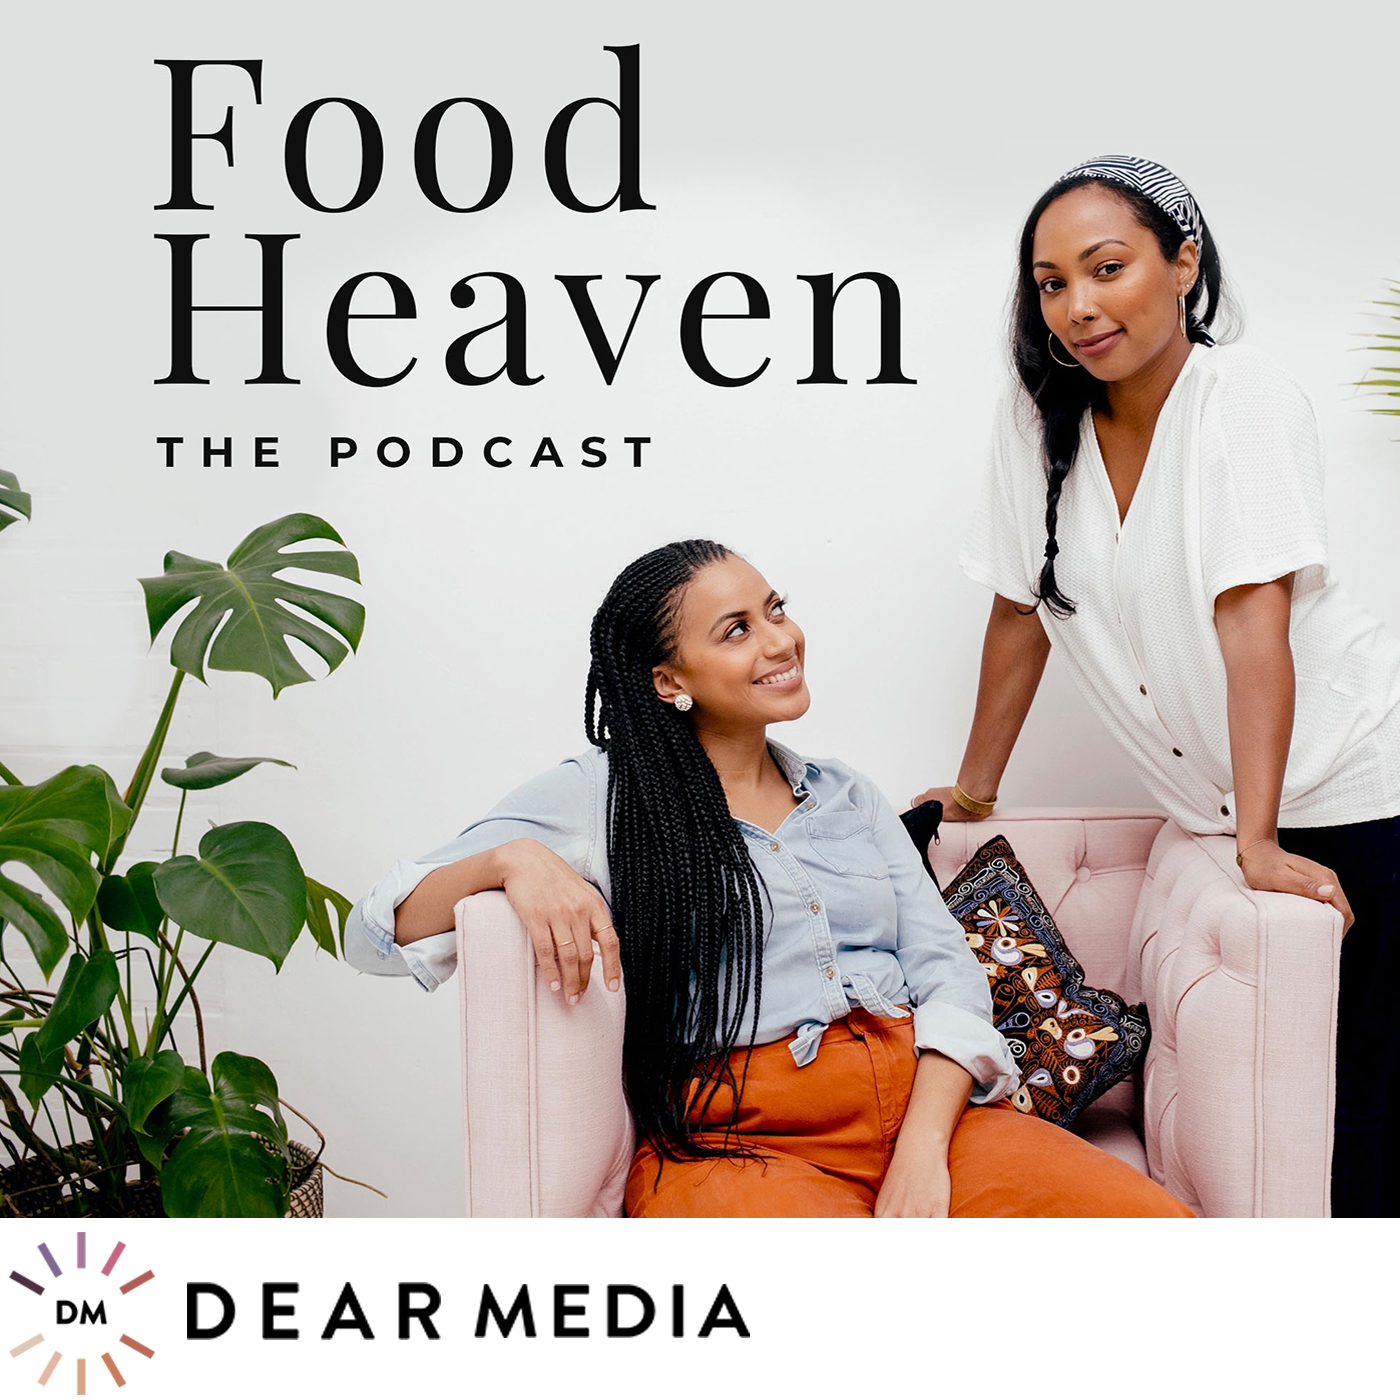 Food Heaven the Podcast